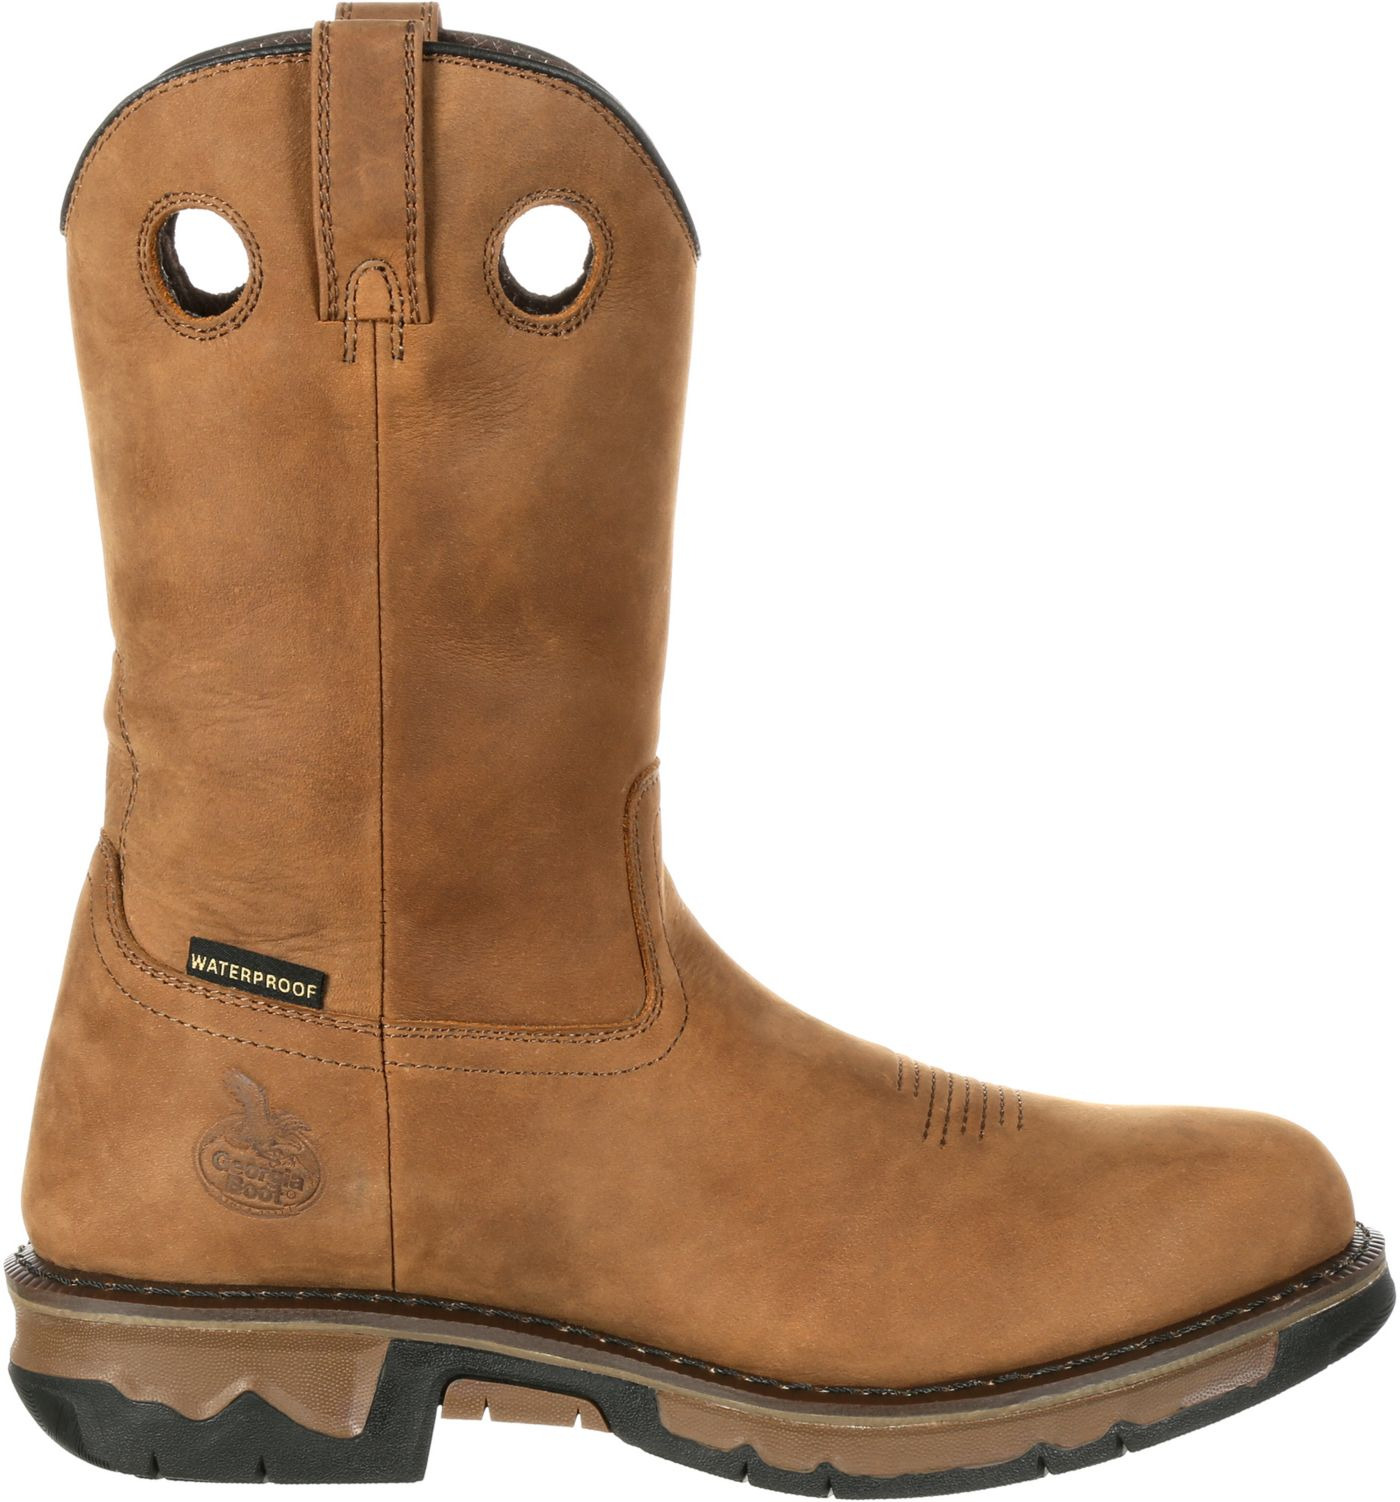 Georgia Boot Men's Carbo-Tec Waterproof Wellington Work Boots